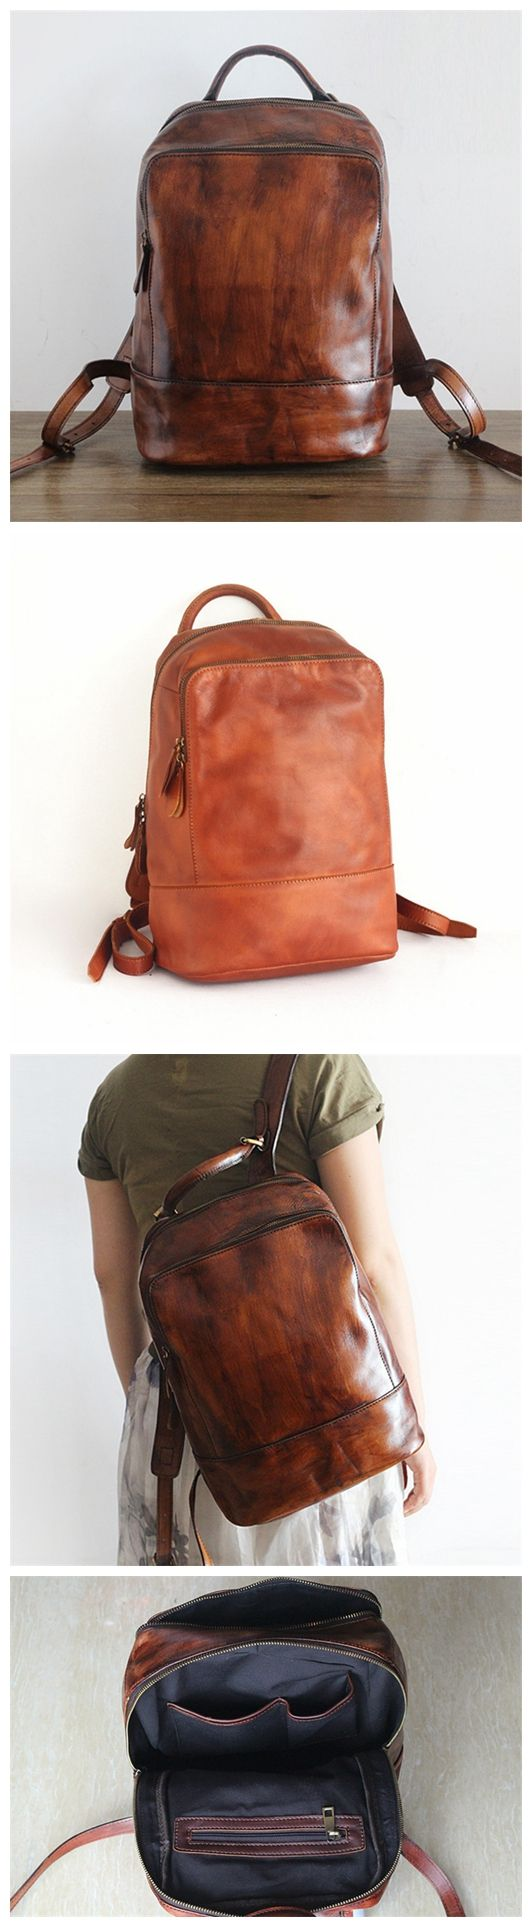 Hand Crafted LEATHER BACKPACK in Brown Color,Citi Rucksack with Zipper Lining Made of Full Grain Leather GS011